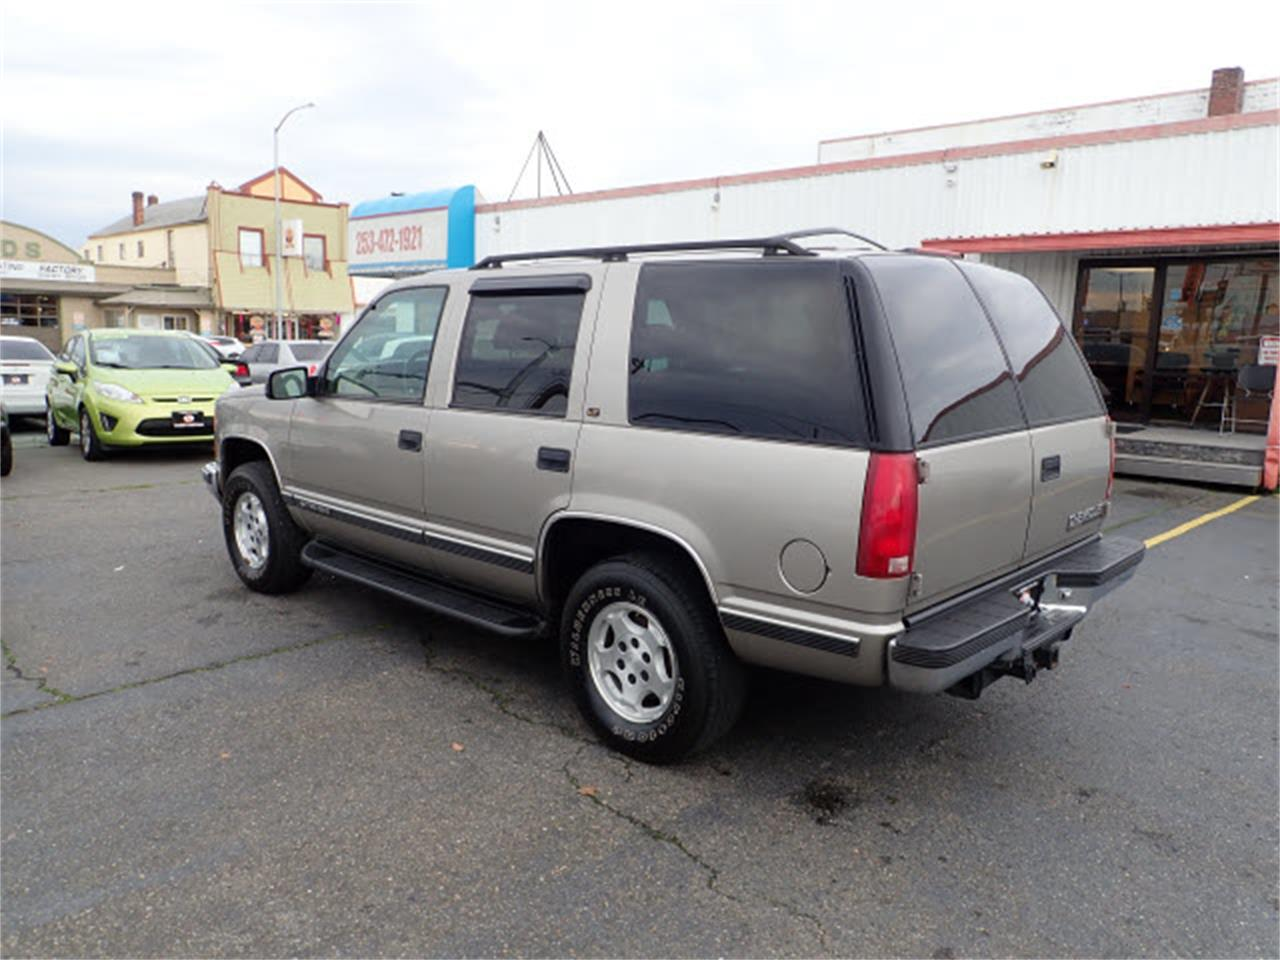 1999 Chevrolet Tahoe (CC-1246638) for sale in Tacoma, Washington